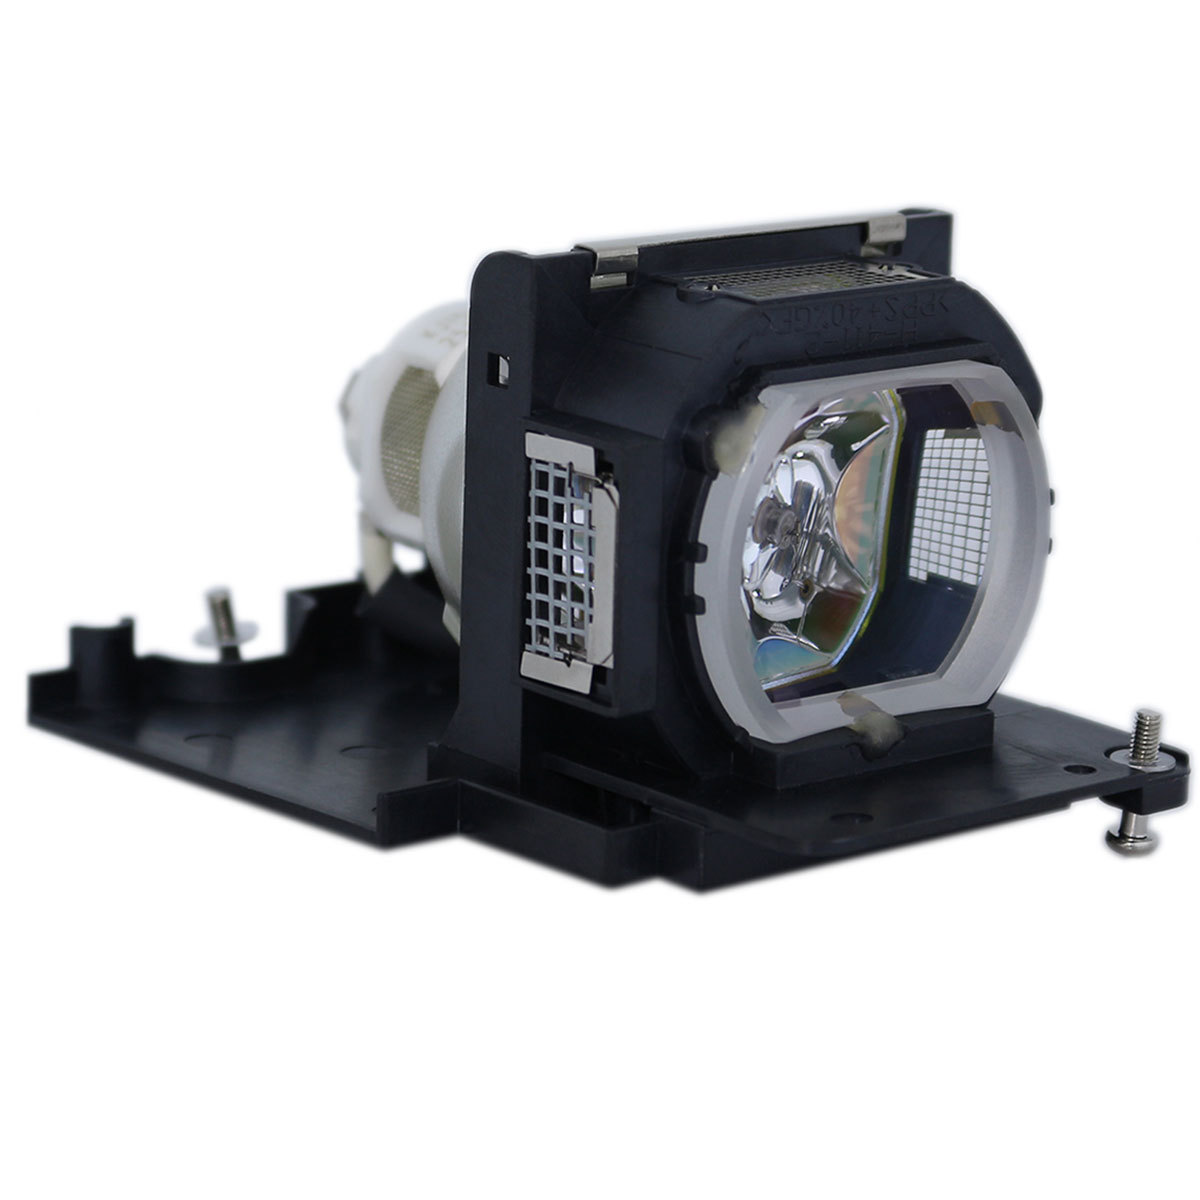 Primary image for Geha 60-201913 Ushio Projector Lamp Module